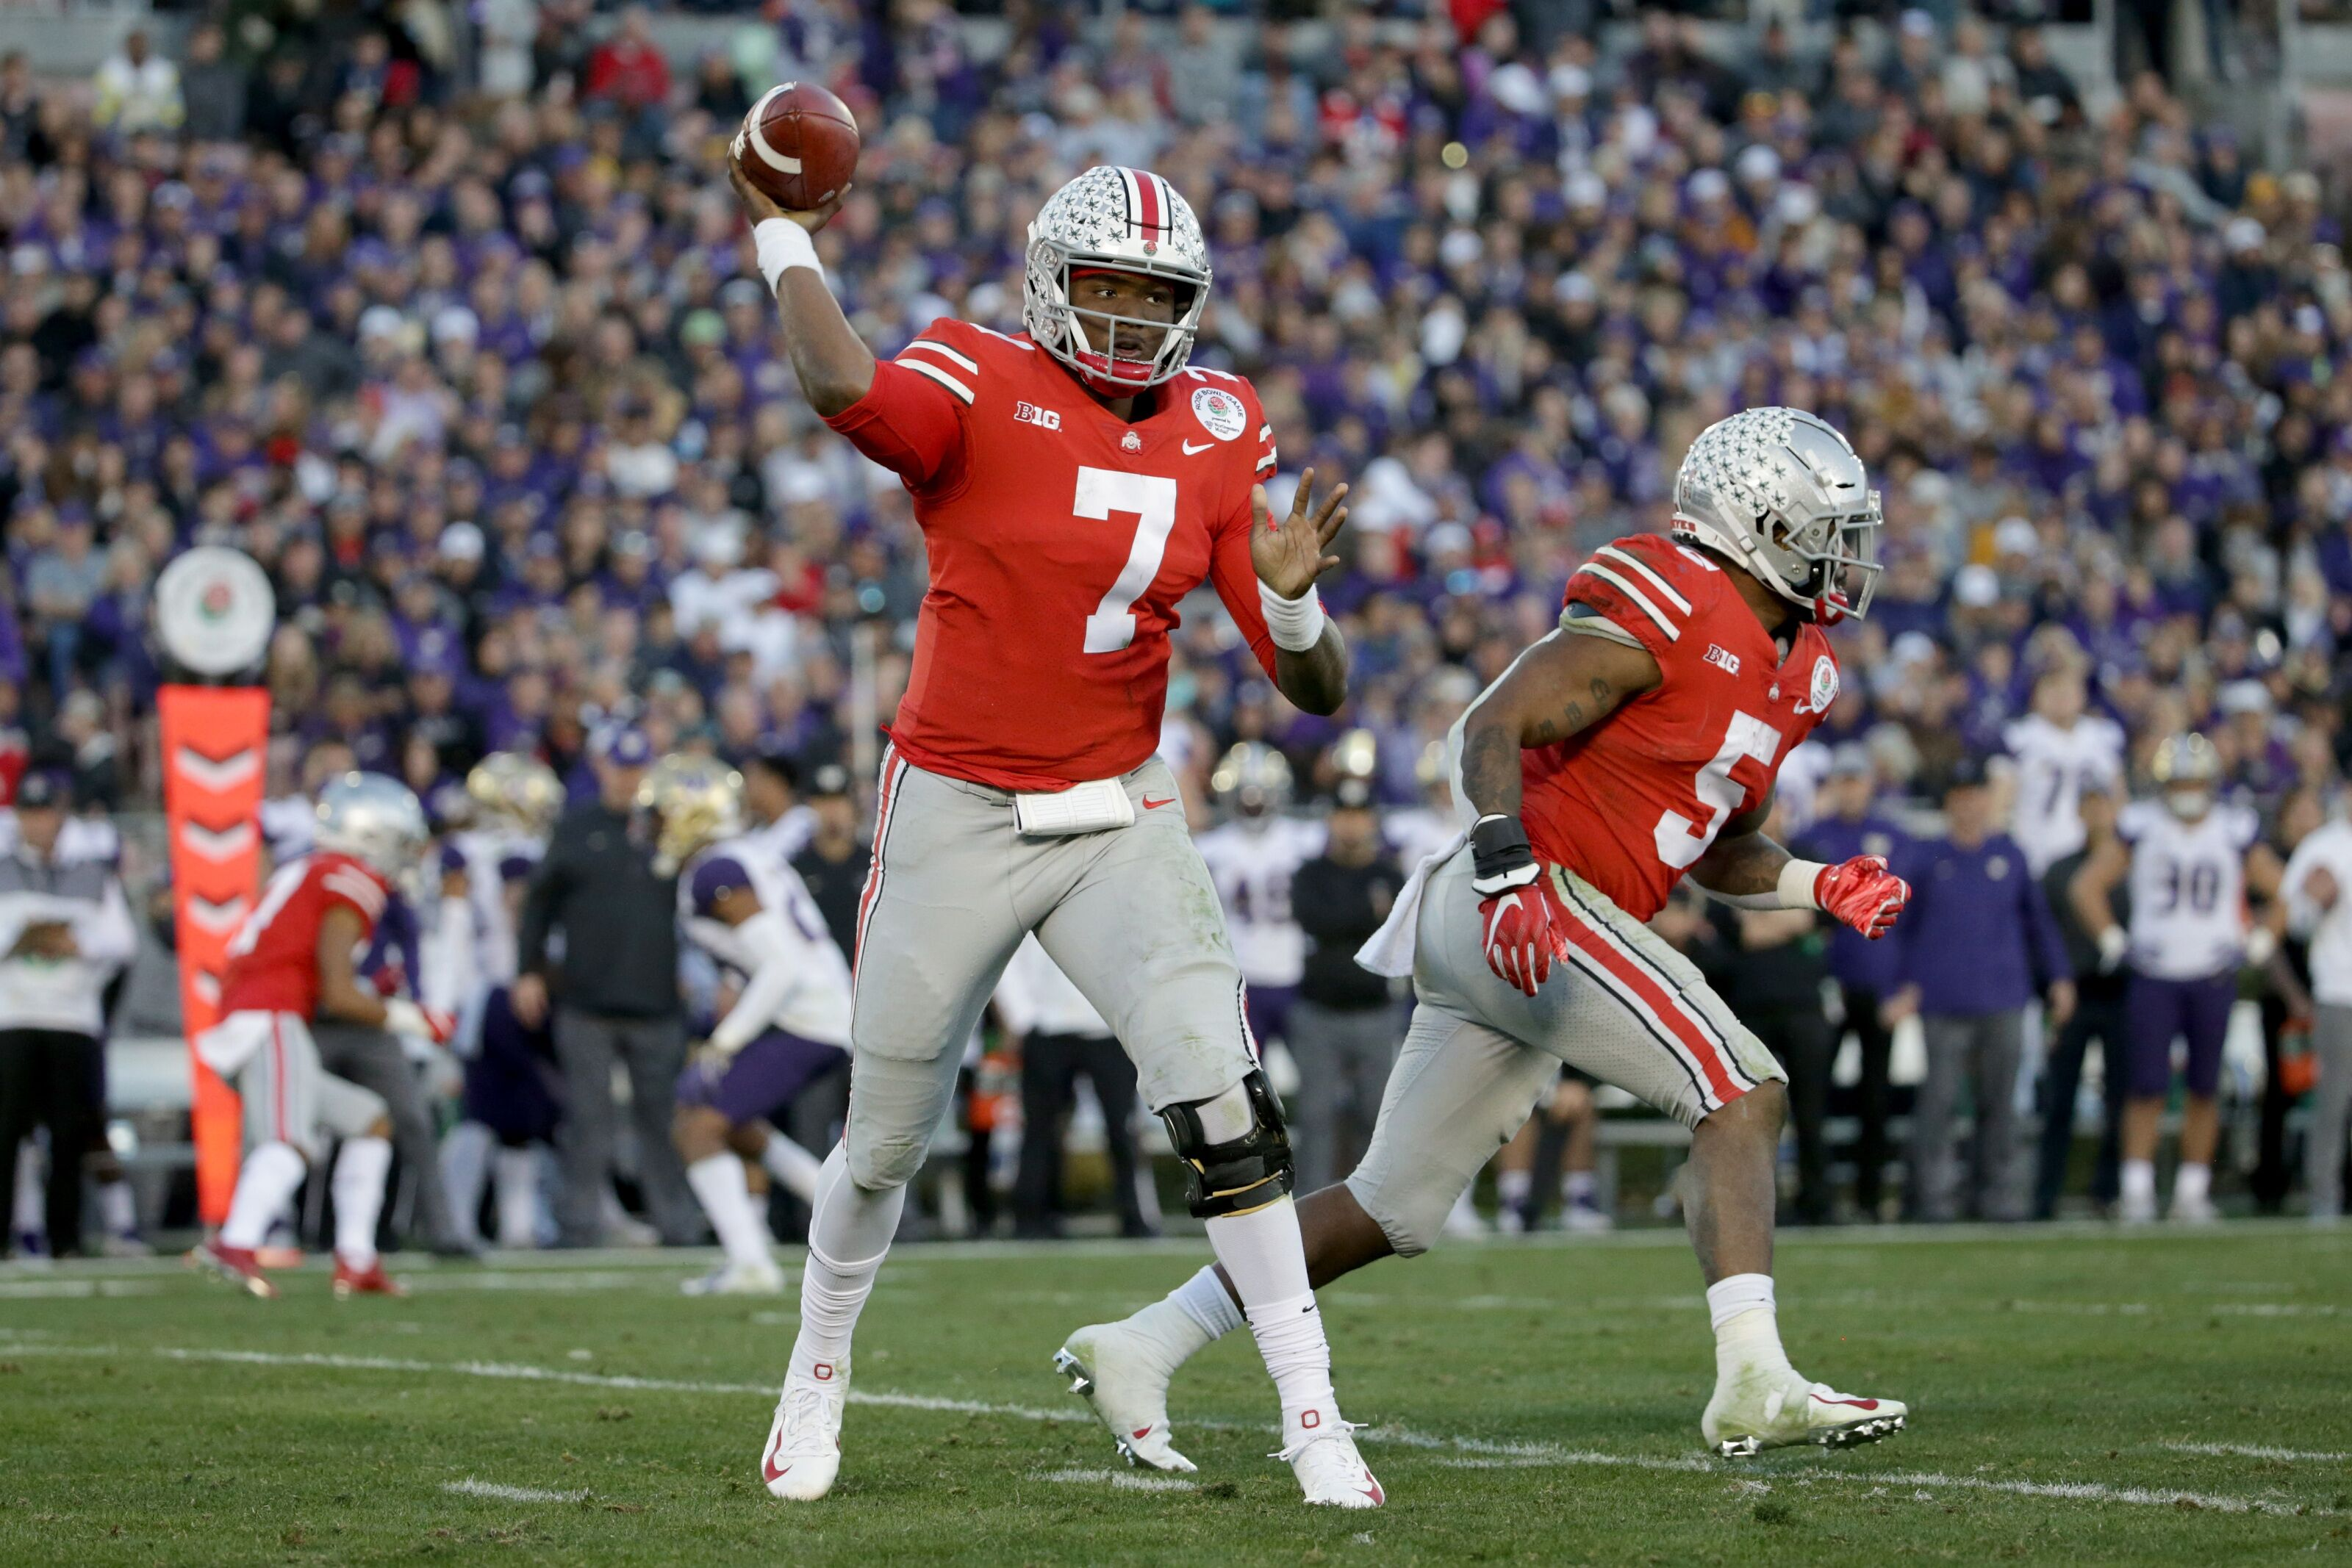 NFL Draft 2019: Redskins get their franchise QB in Dwayne Haskins